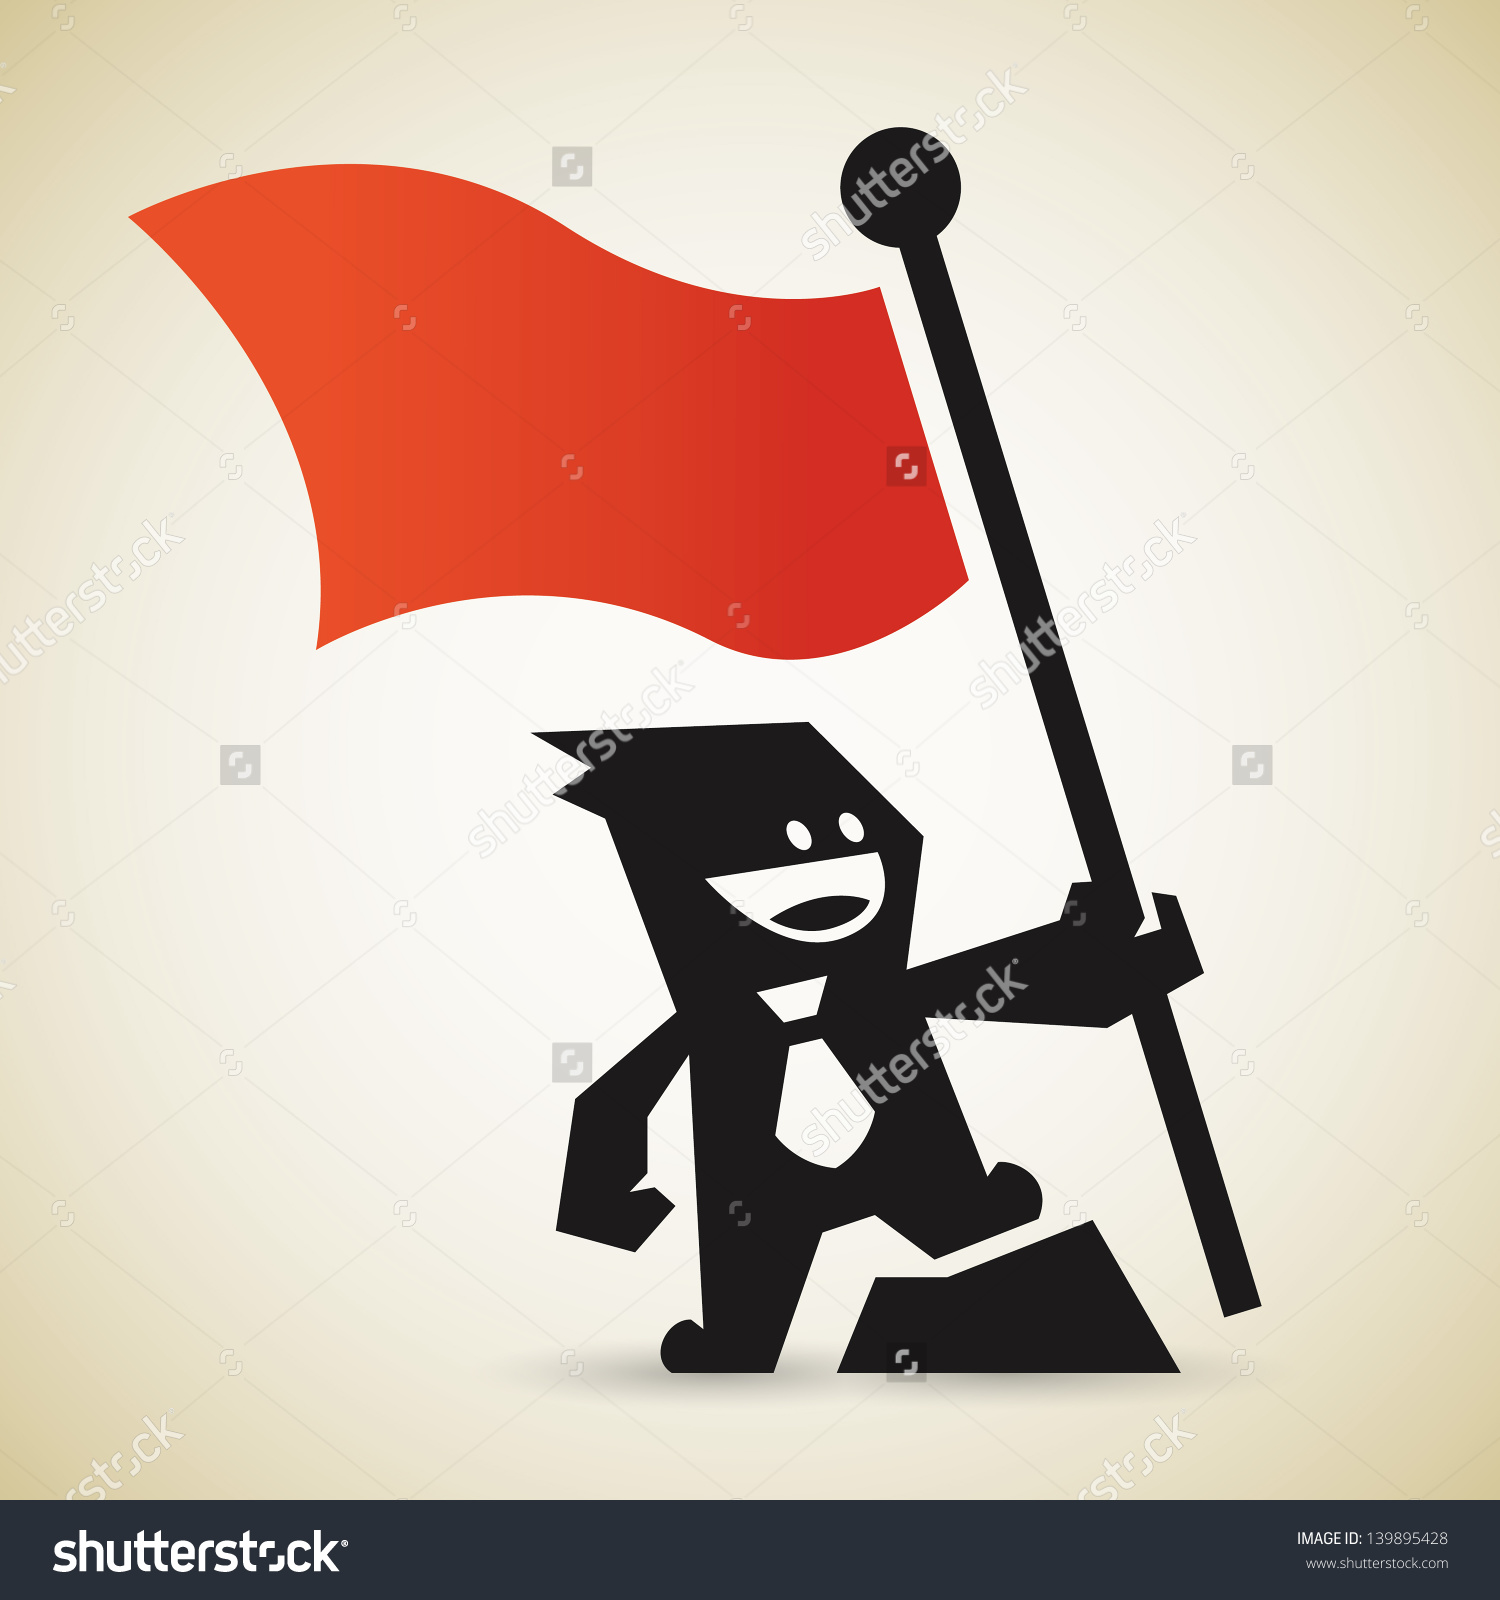 Capture Flag Stock Vector 139895428.